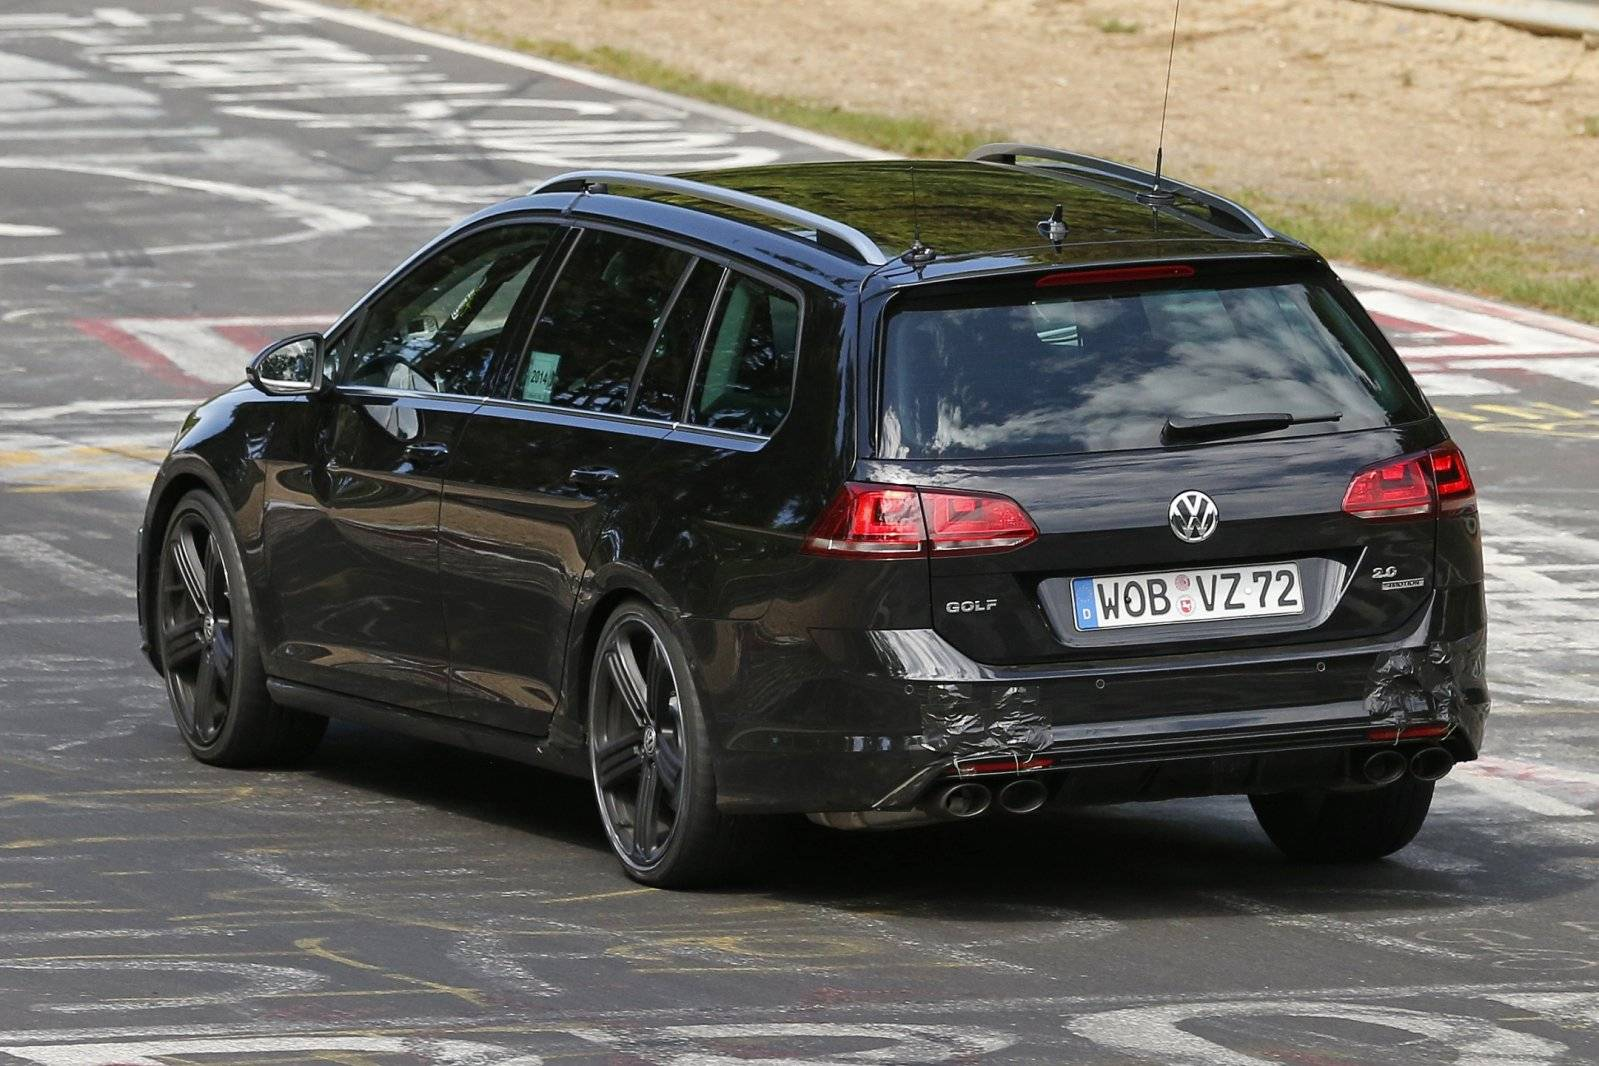 Volkswagen Golf R Variant Sprint Over De Nurburgring further File 1982 VW Mk1 Golf GTi 02 furthermore Wallpaper 02 additionally Vw T5 Rockton 2 0 Tdi Expedition Im Test 172214 furthermore Beautiful German Classic Cars. on 02 volkswagen gti